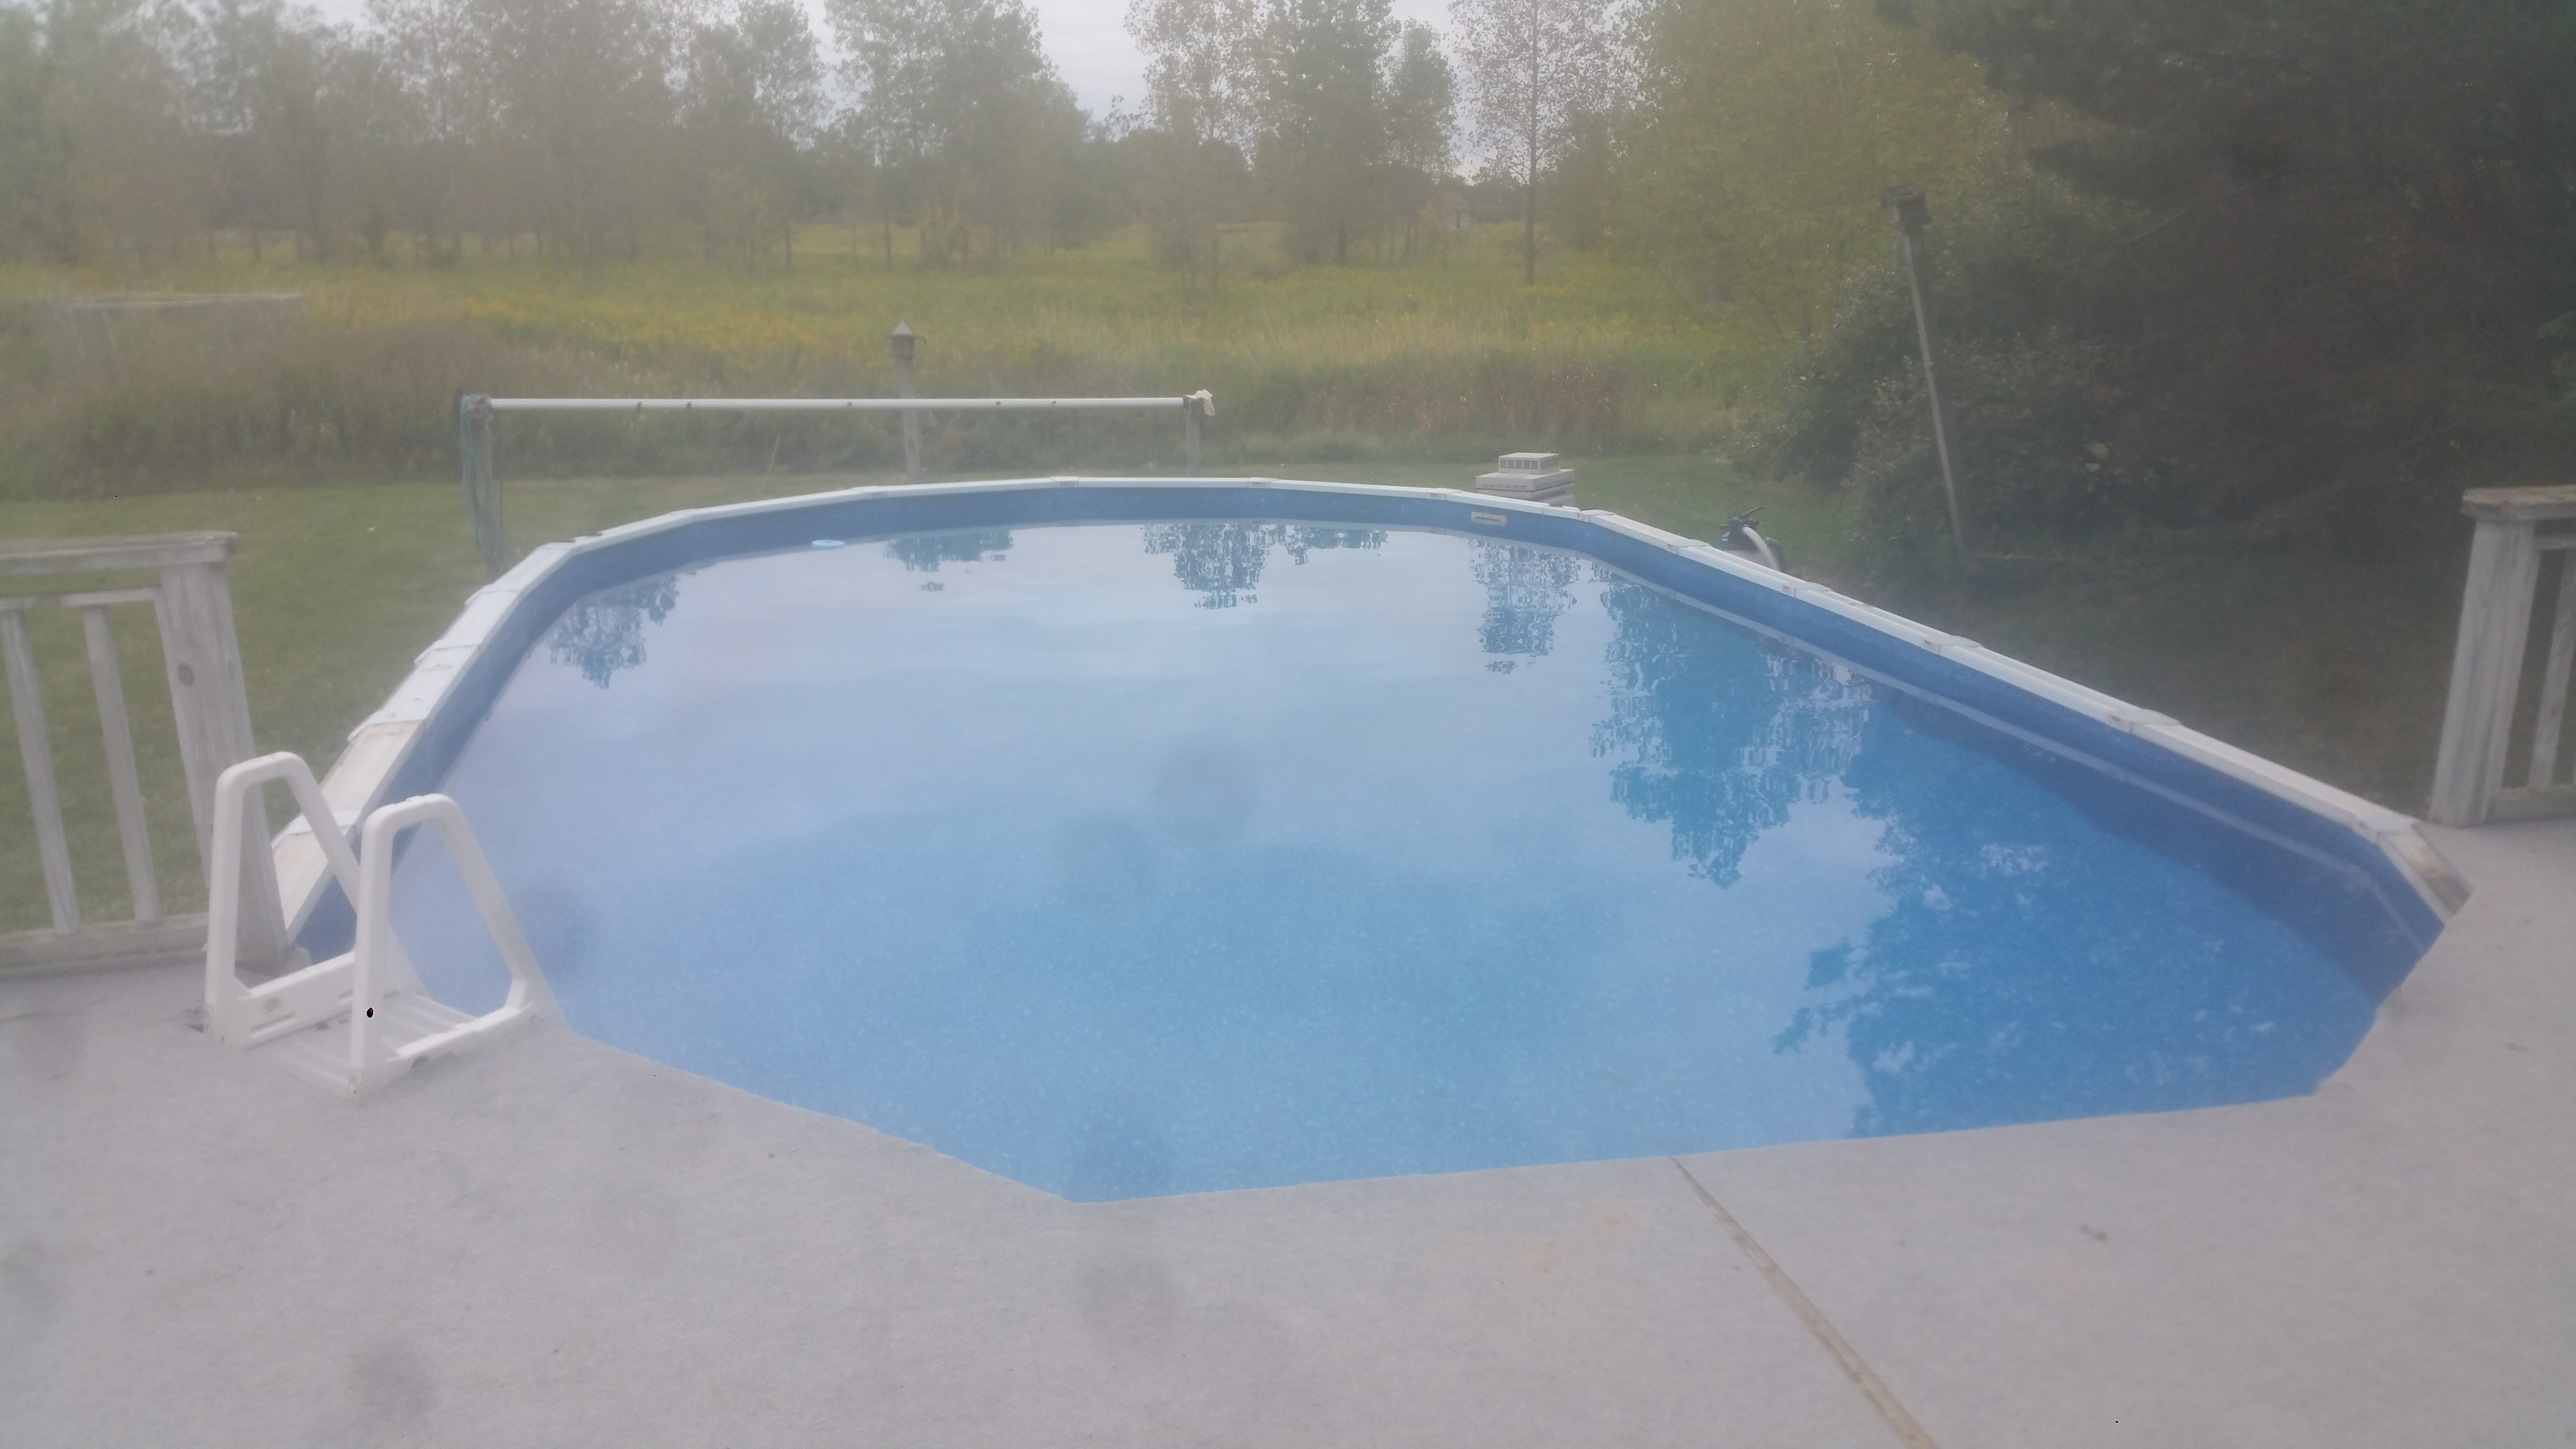 Pool liner replacement crystal clear pools mi for Pool show michigan